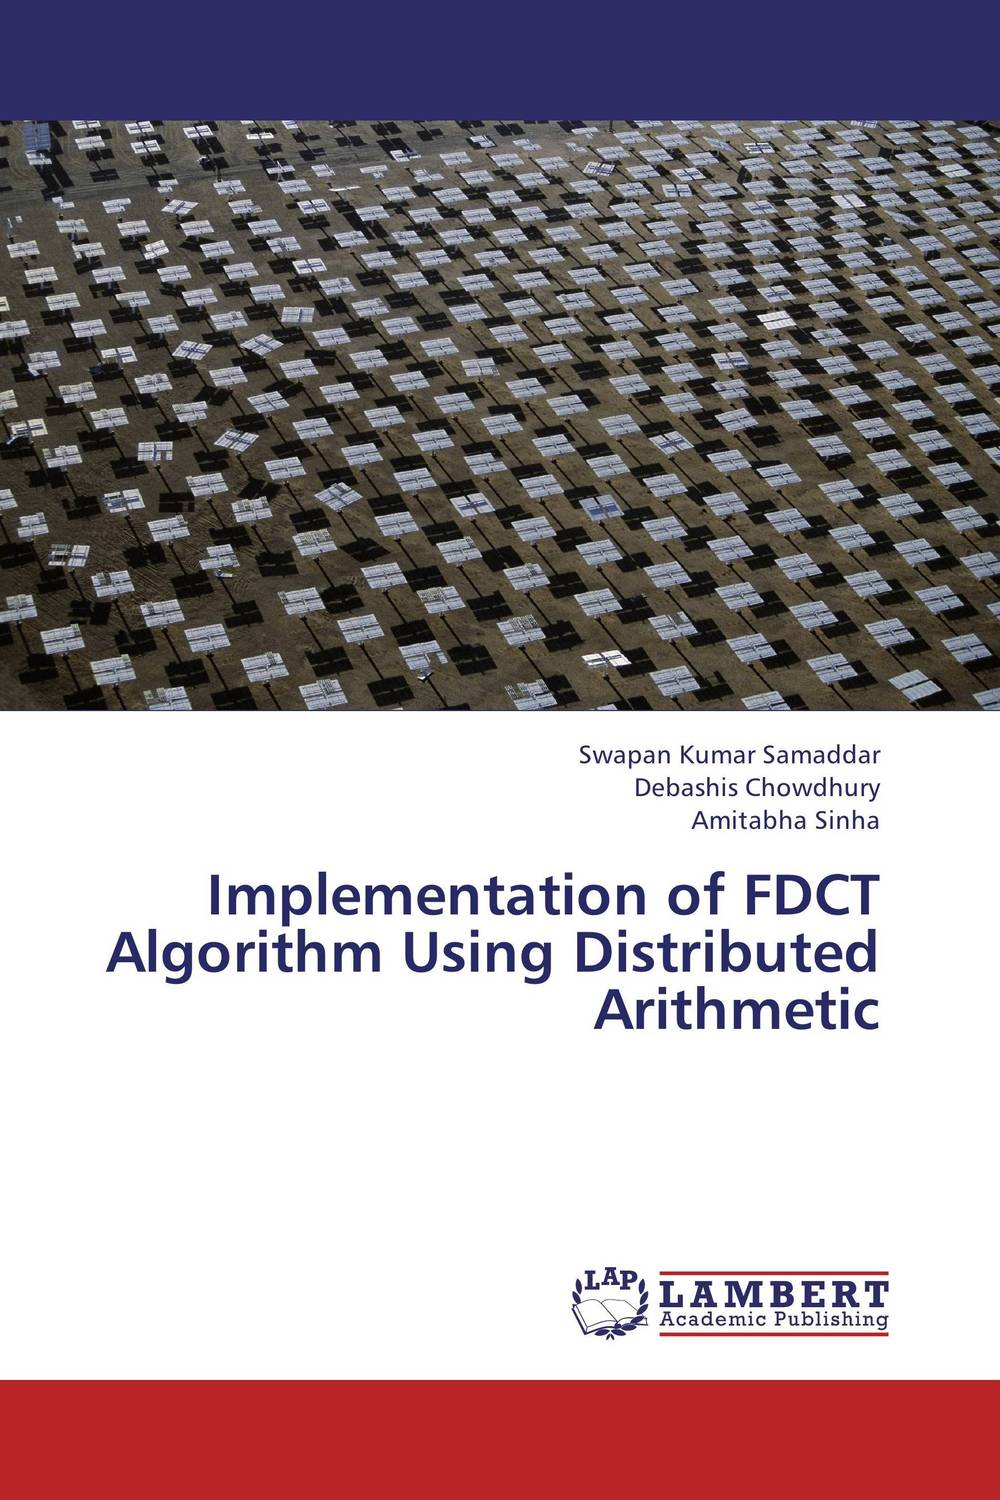 Implementation of FDCT Algorithm Using Distributed Arithmetic performance analysis of fdct algorithms